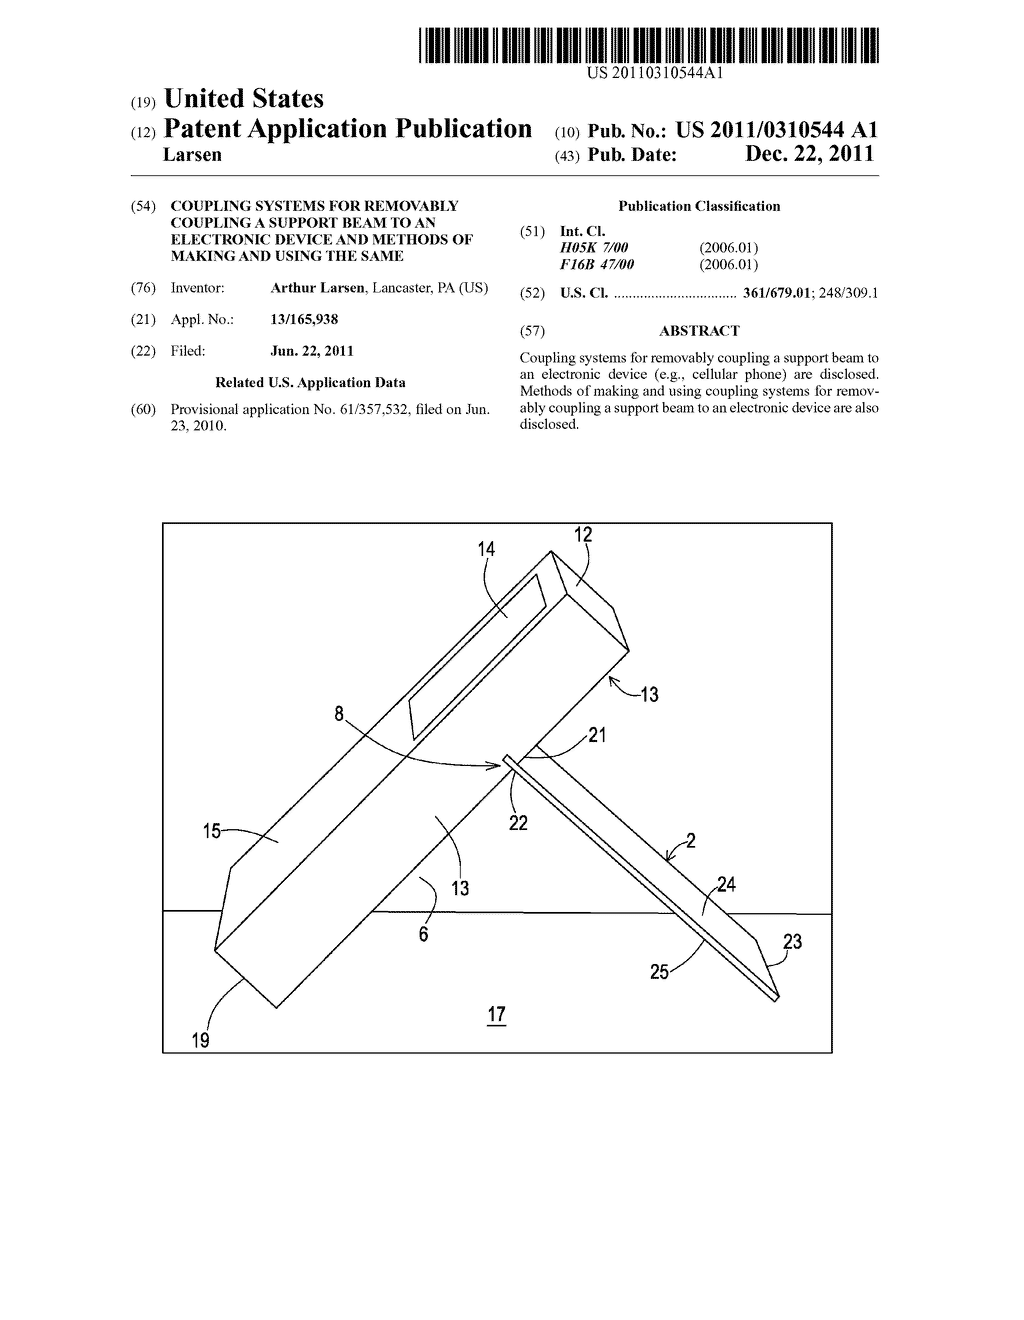 Coupling Systems for Removably Coupling a Support Beam to an Electronic     Device and Methods of Making and Using the Same - diagram, schematic, and image 01